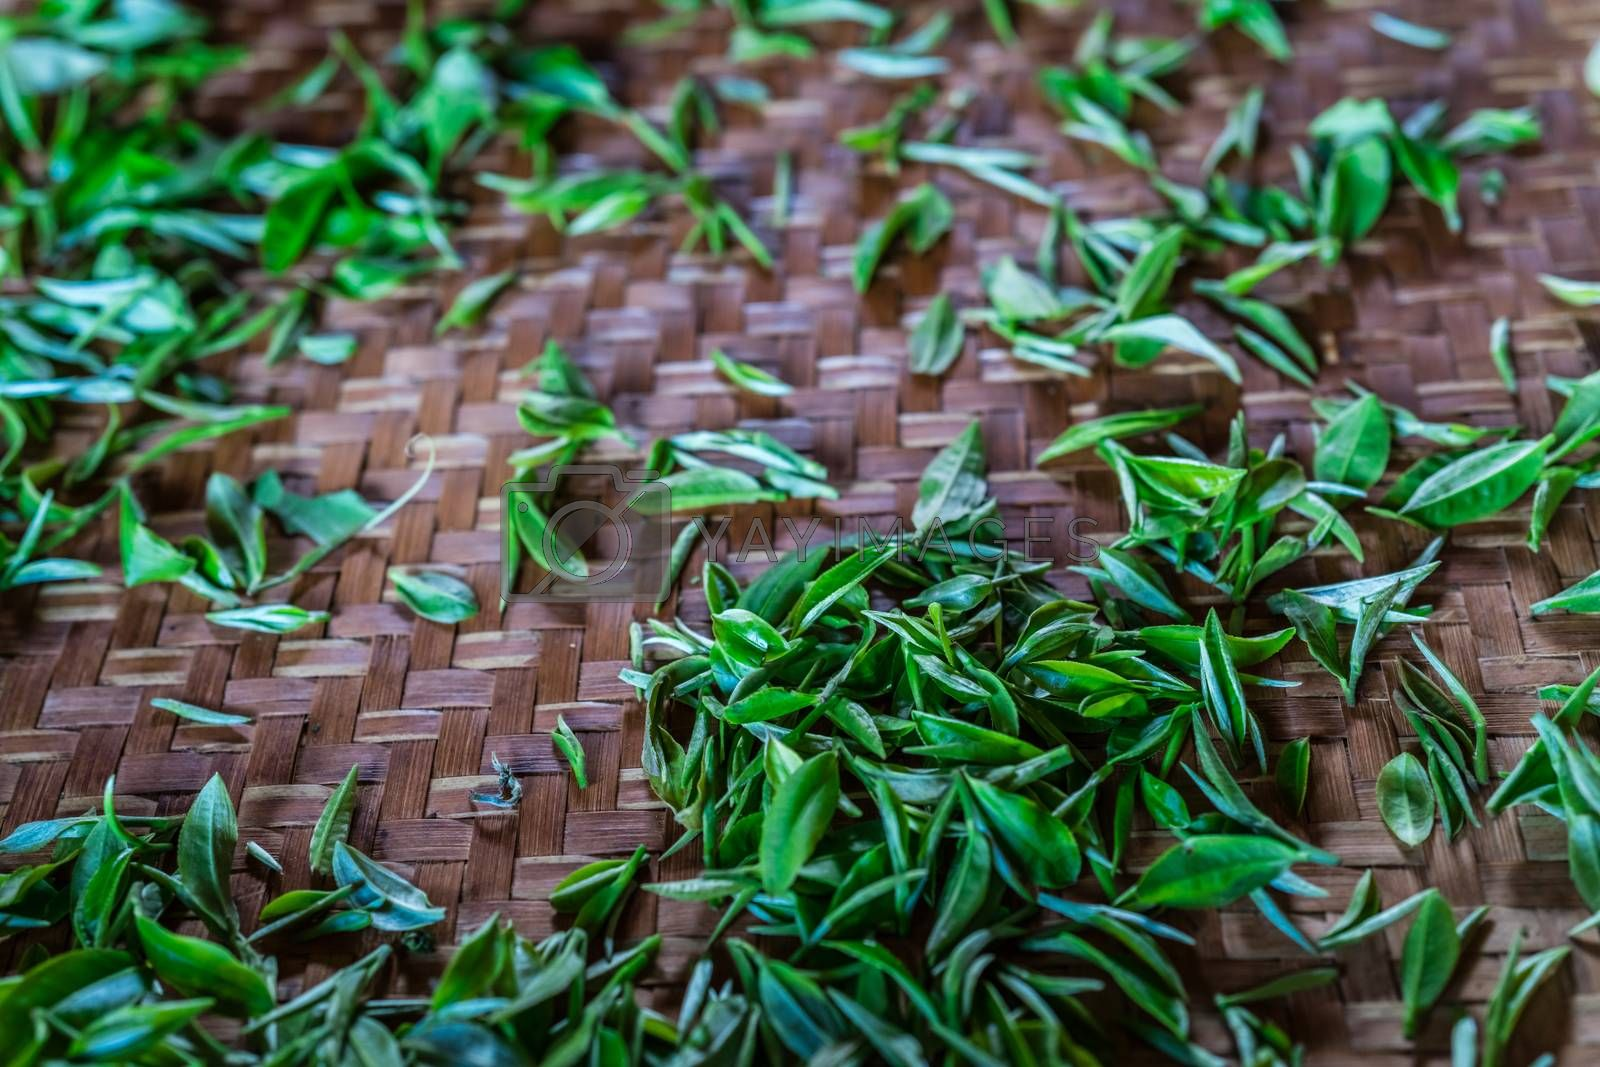 Close up shot of fresh tea leaves gathered from the plantation spread on a tray